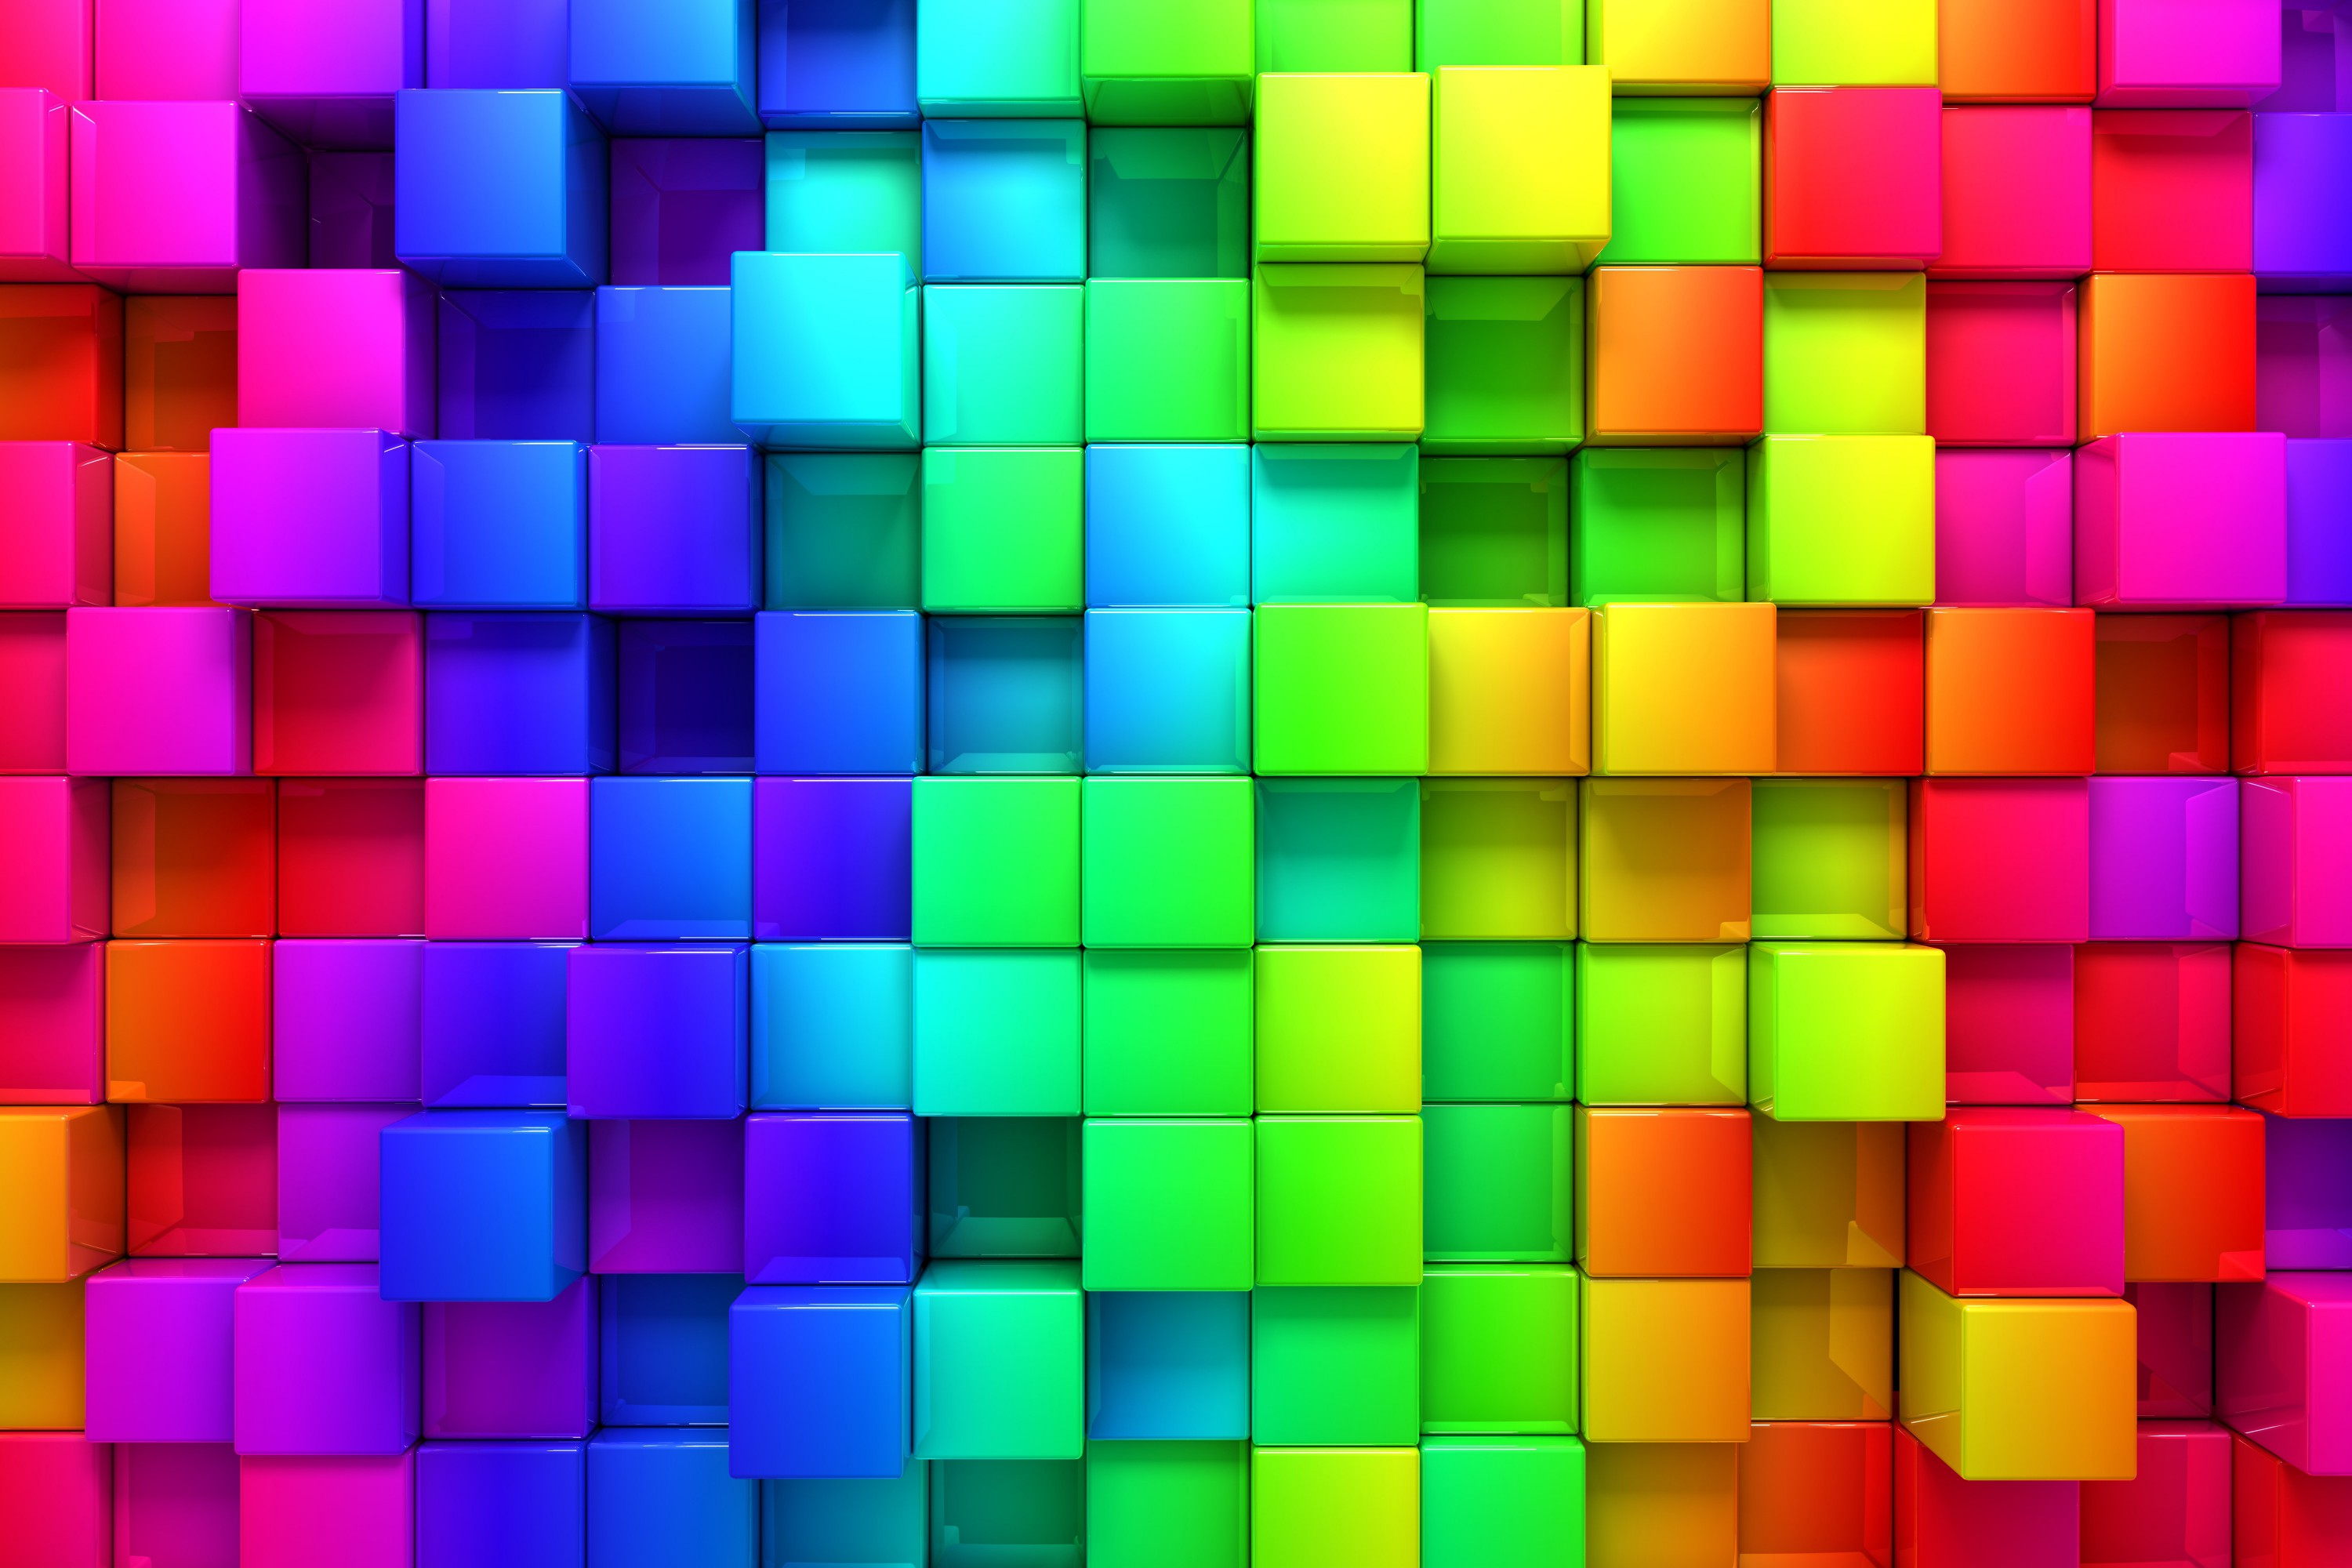 Blocks rainbow 3d graphics background 76559 6000 4000 hd wallpapers download - Wallpaper 3000 x 4000 ...